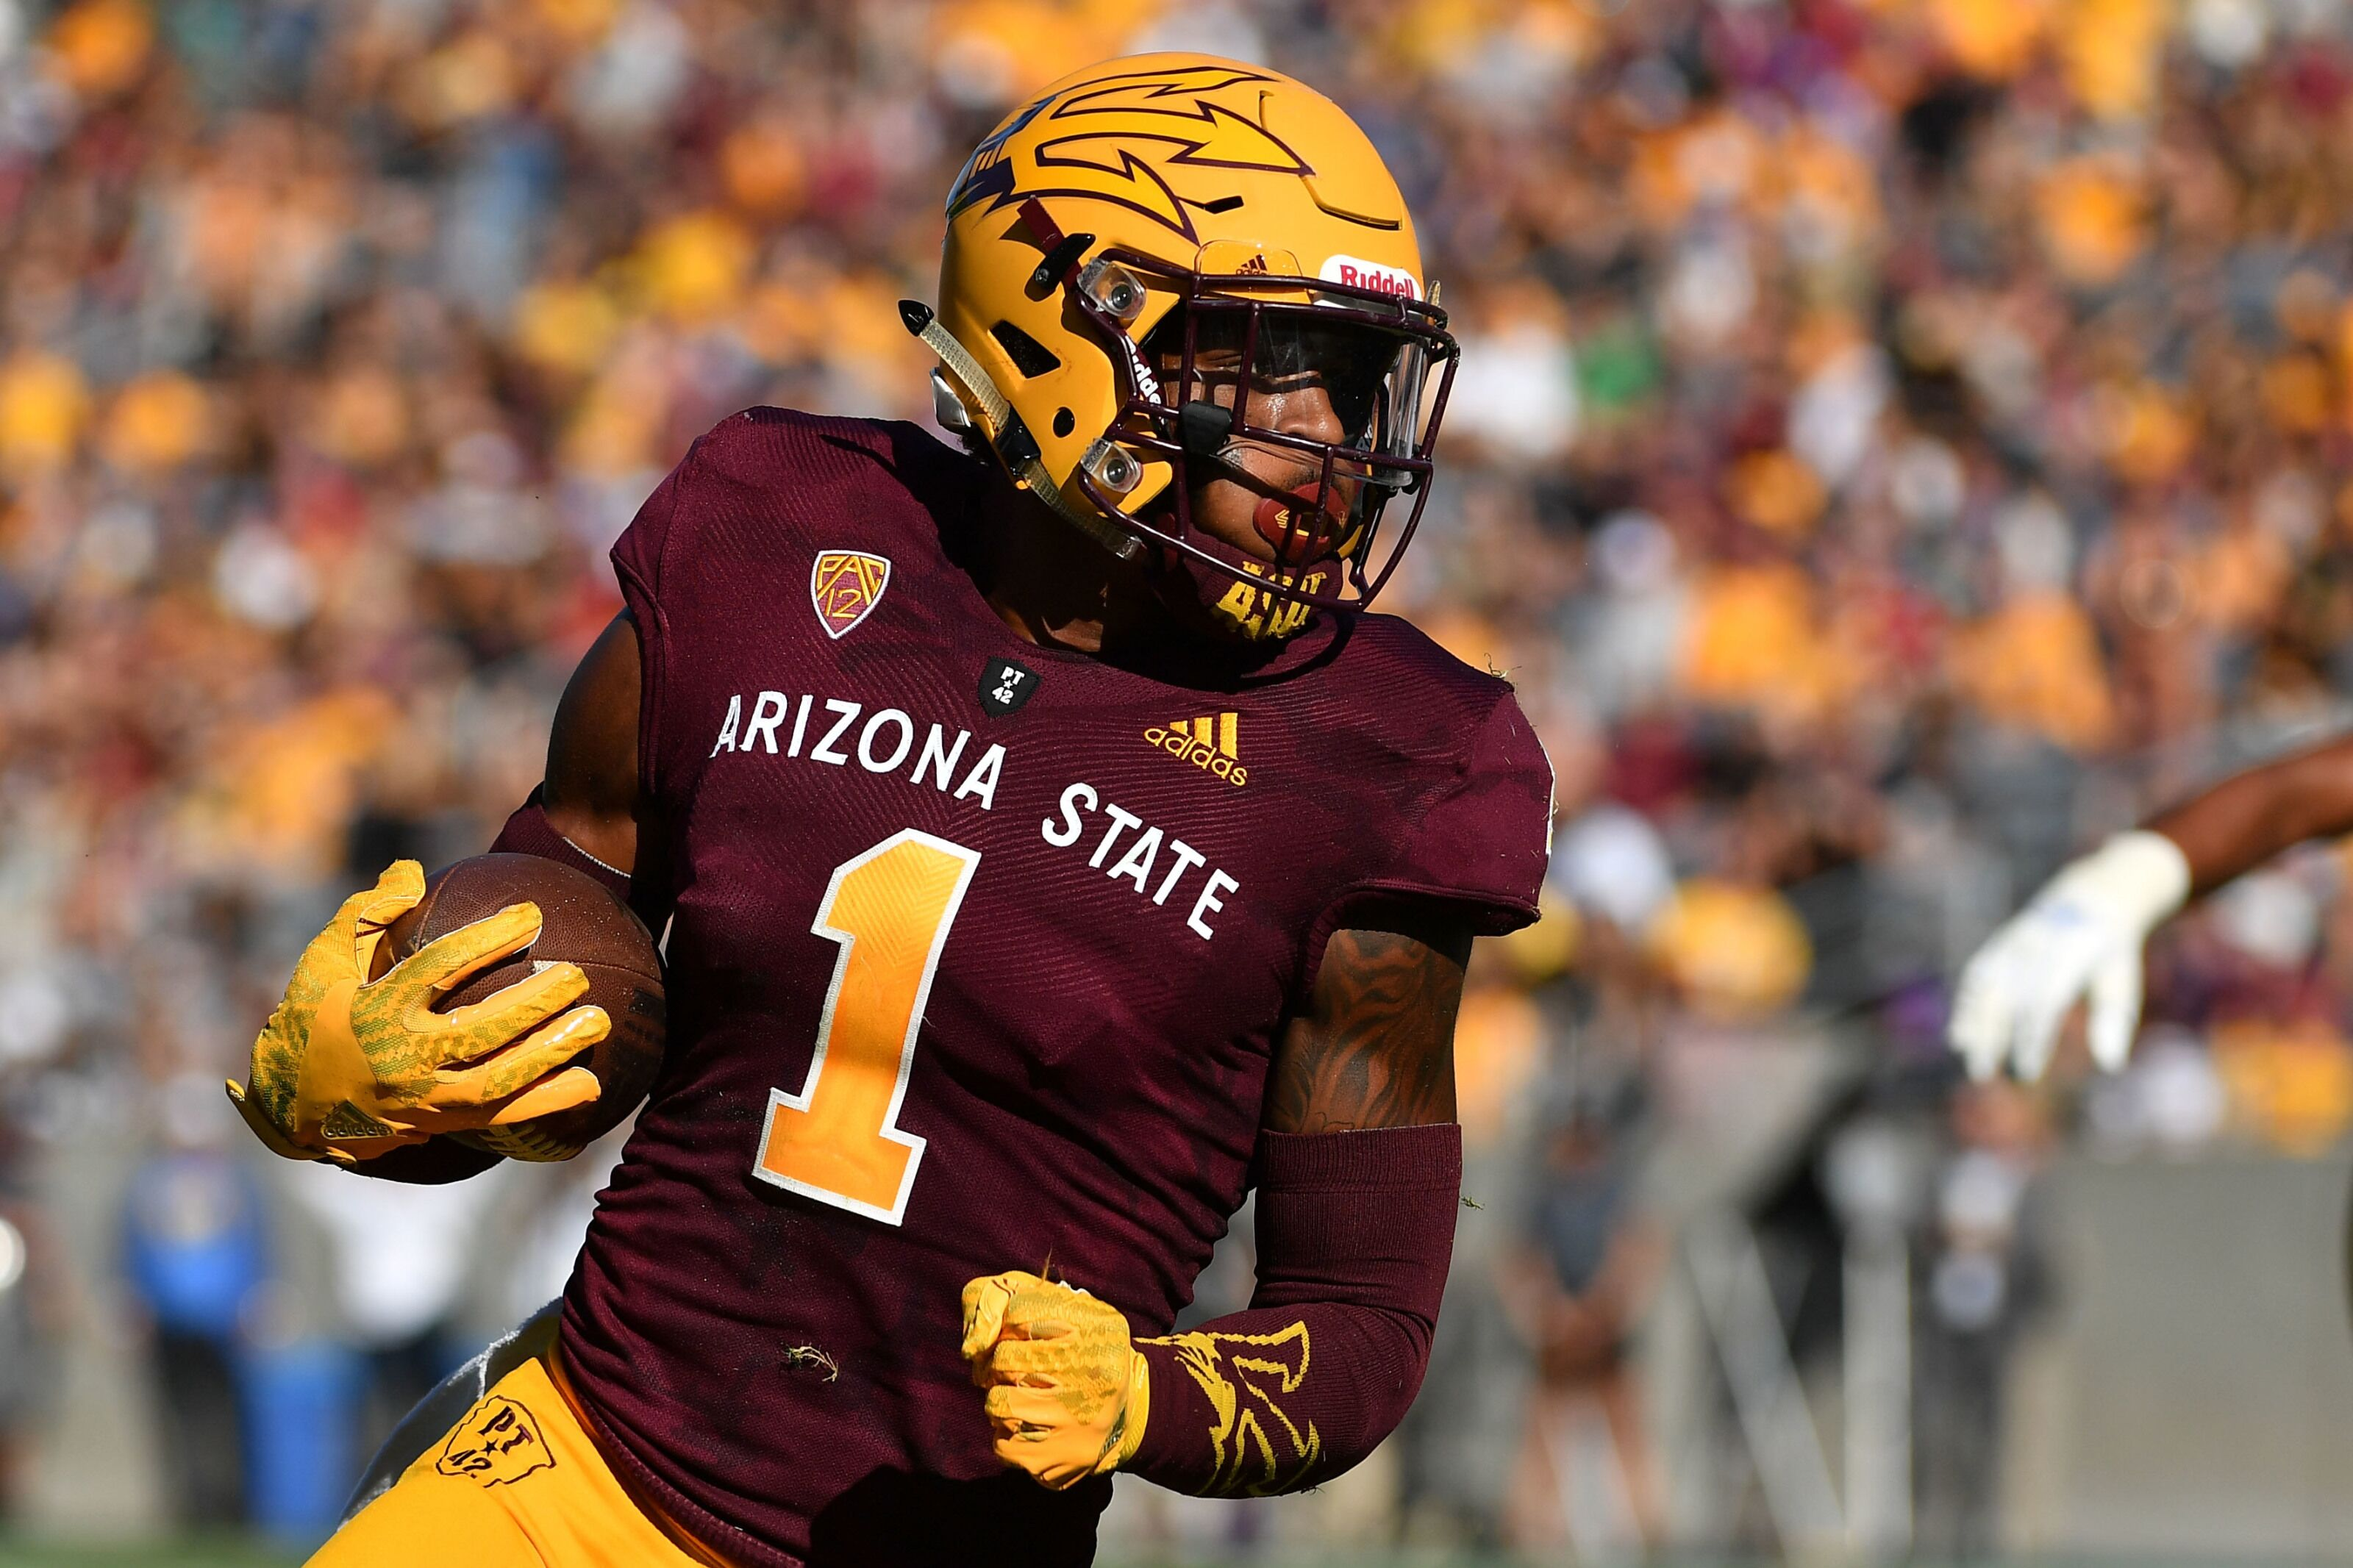 N'Keal Harry motivated by his grandmother and ready to make NFL history